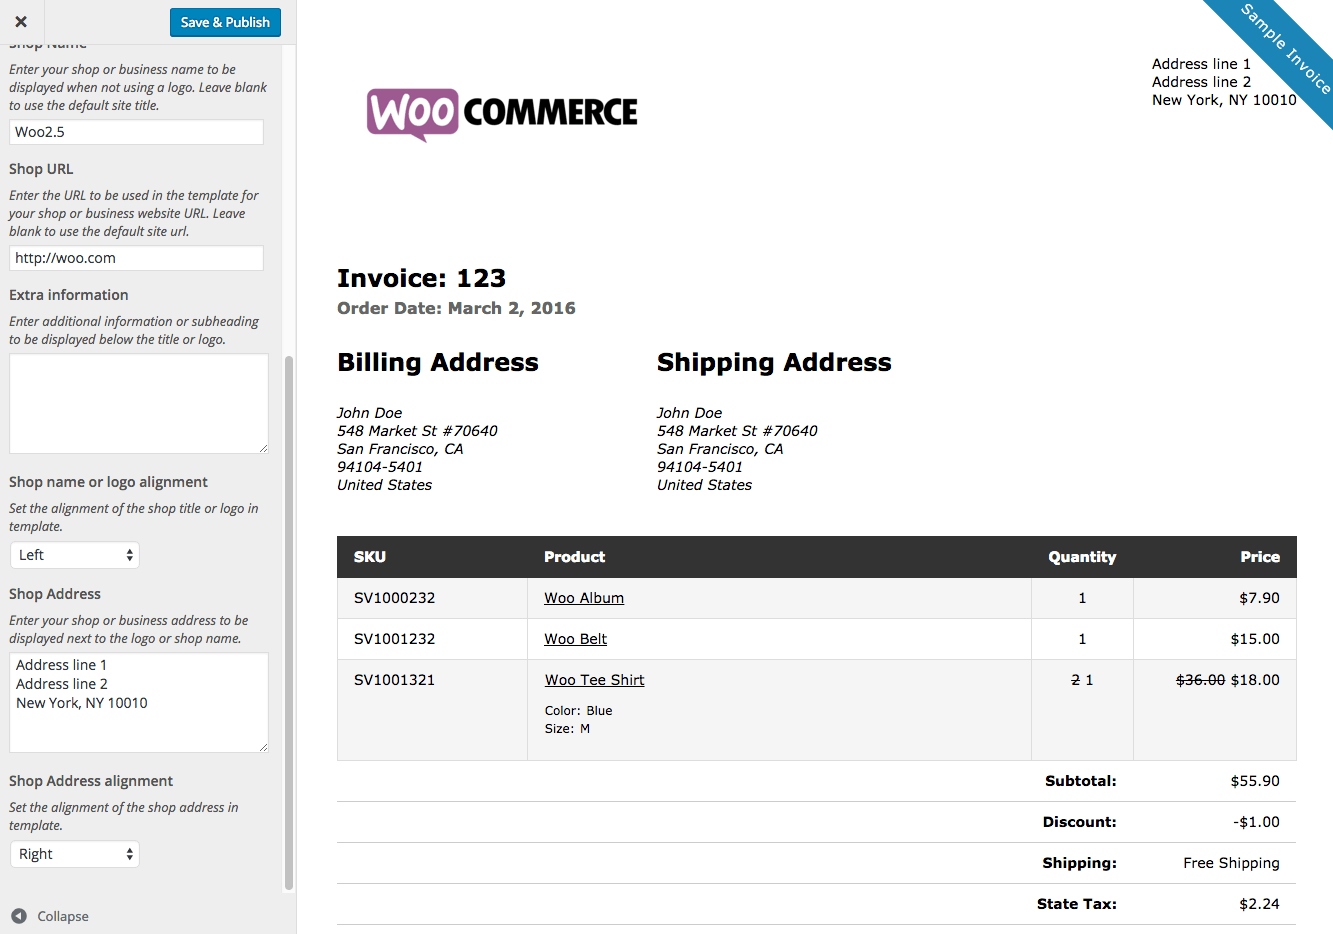 Roundshotus  Outstanding Print Invoices Amp Packing Lists  Woocommerce With Foxy Woocommerce Print Invoices  Packing Lists Customizer With Agreeable Billing Statement Vs Invoice Also Sample Roofing Invoice In Addition Invoice By Vin And Service Invoice Templates As Well As How To Design An Invoice Additionally Bill To Invoice From Woocommercecom With Roundshotus  Foxy Print Invoices Amp Packing Lists  Woocommerce With Agreeable Woocommerce Print Invoices  Packing Lists Customizer And Outstanding Billing Statement Vs Invoice Also Sample Roofing Invoice In Addition Invoice By Vin From Woocommercecom